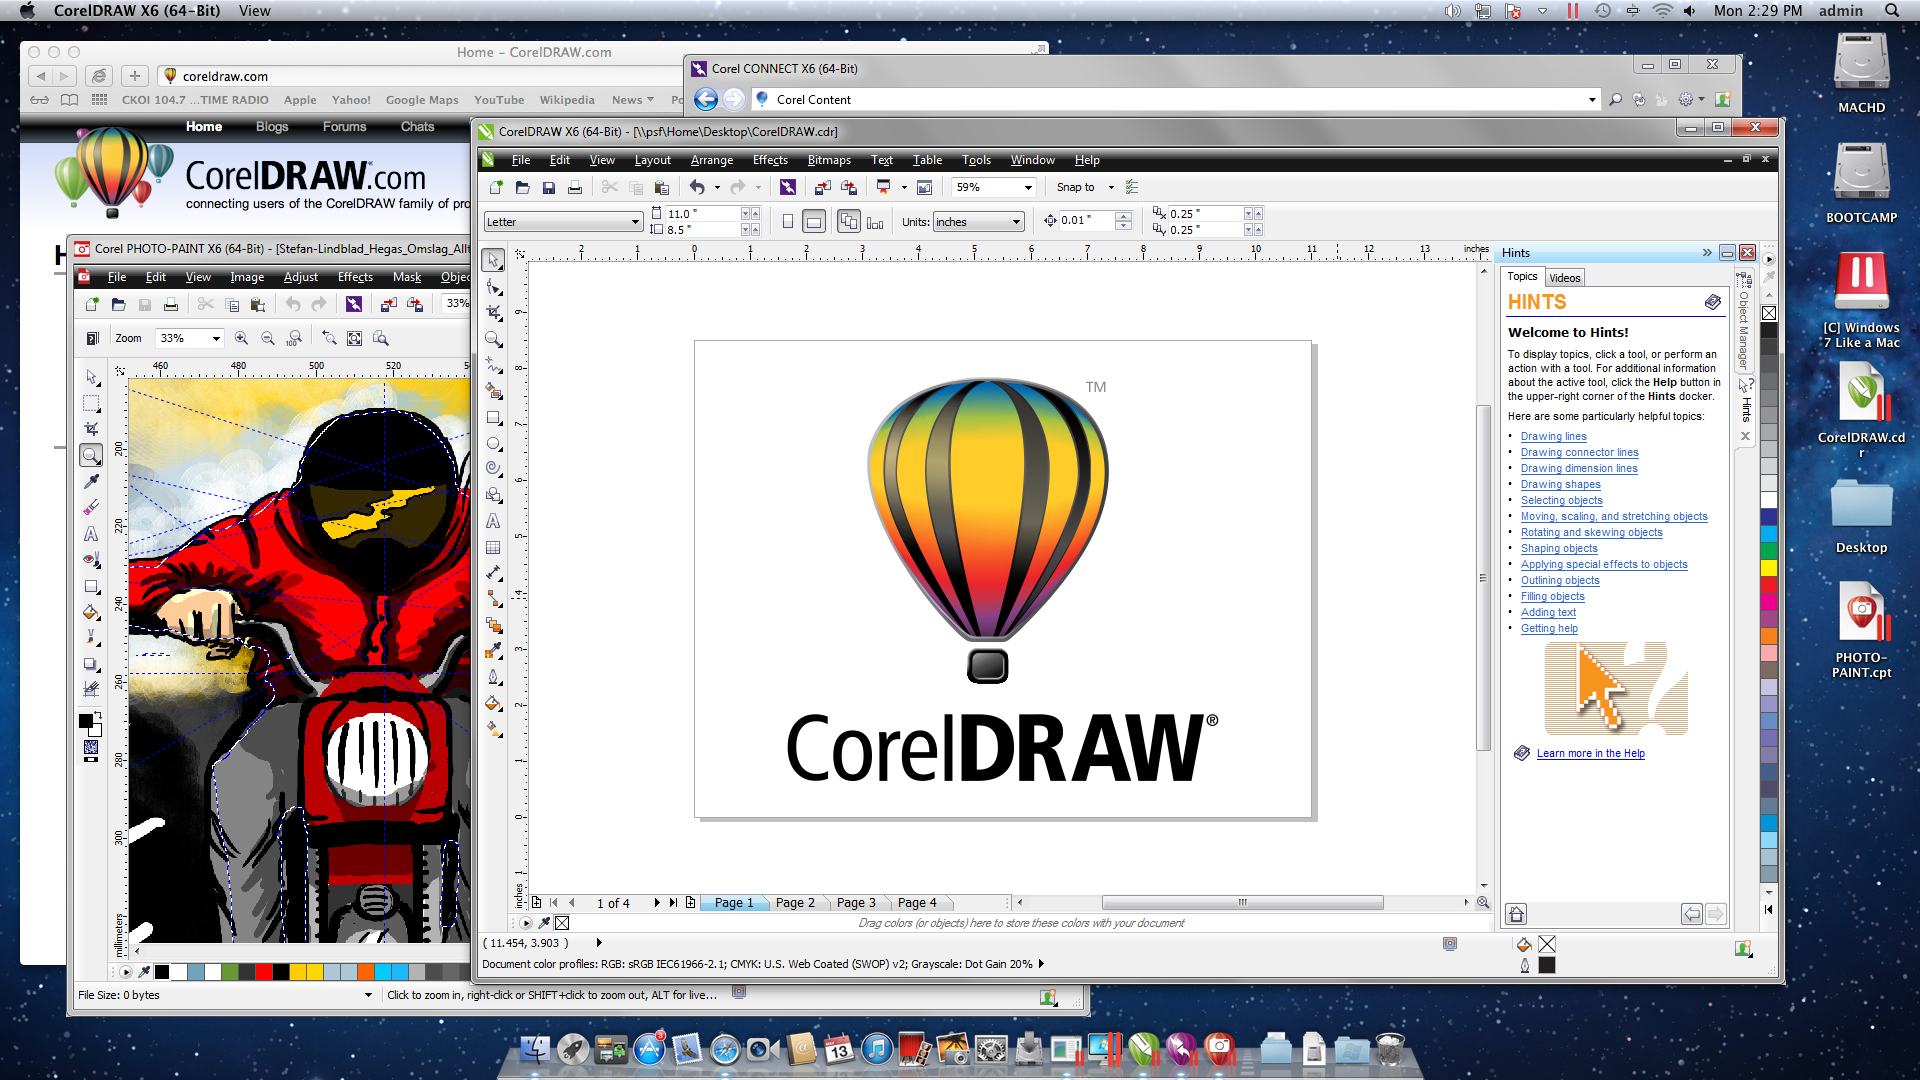 You can run CorelDRAW on a Mac! | Corel Blogs